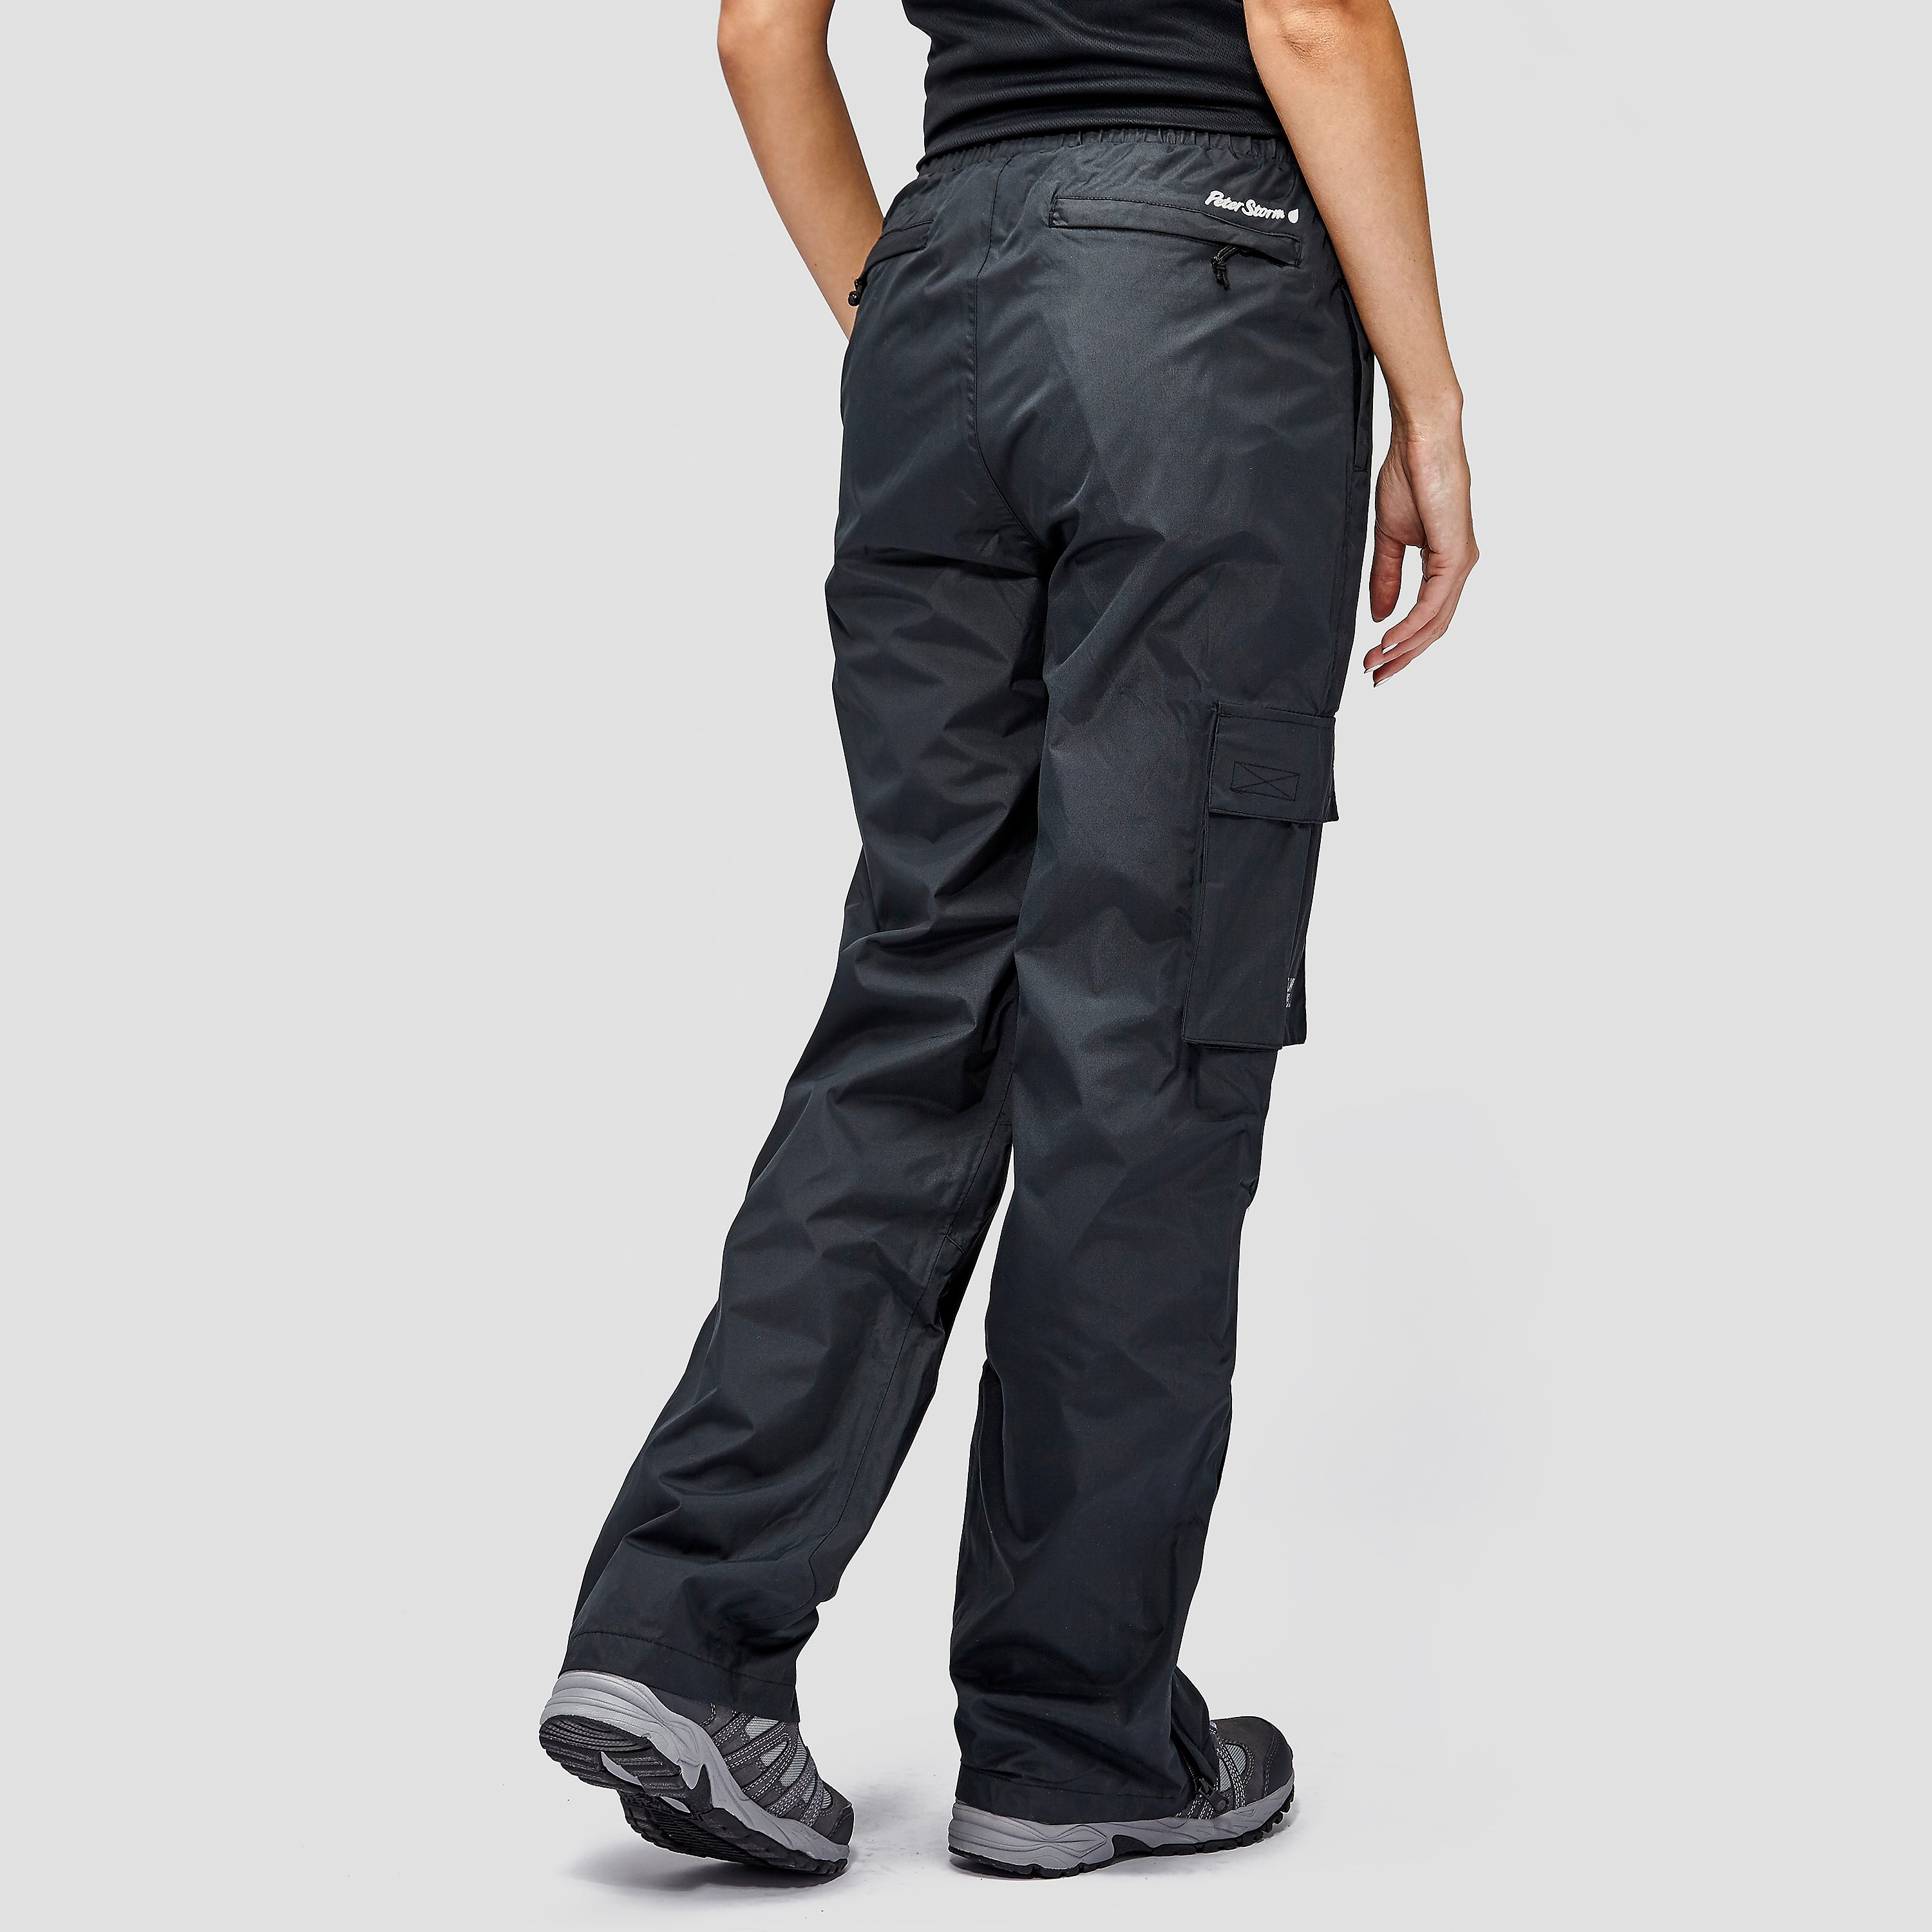 Peter Storm Women's Storm Waterproof Trousers